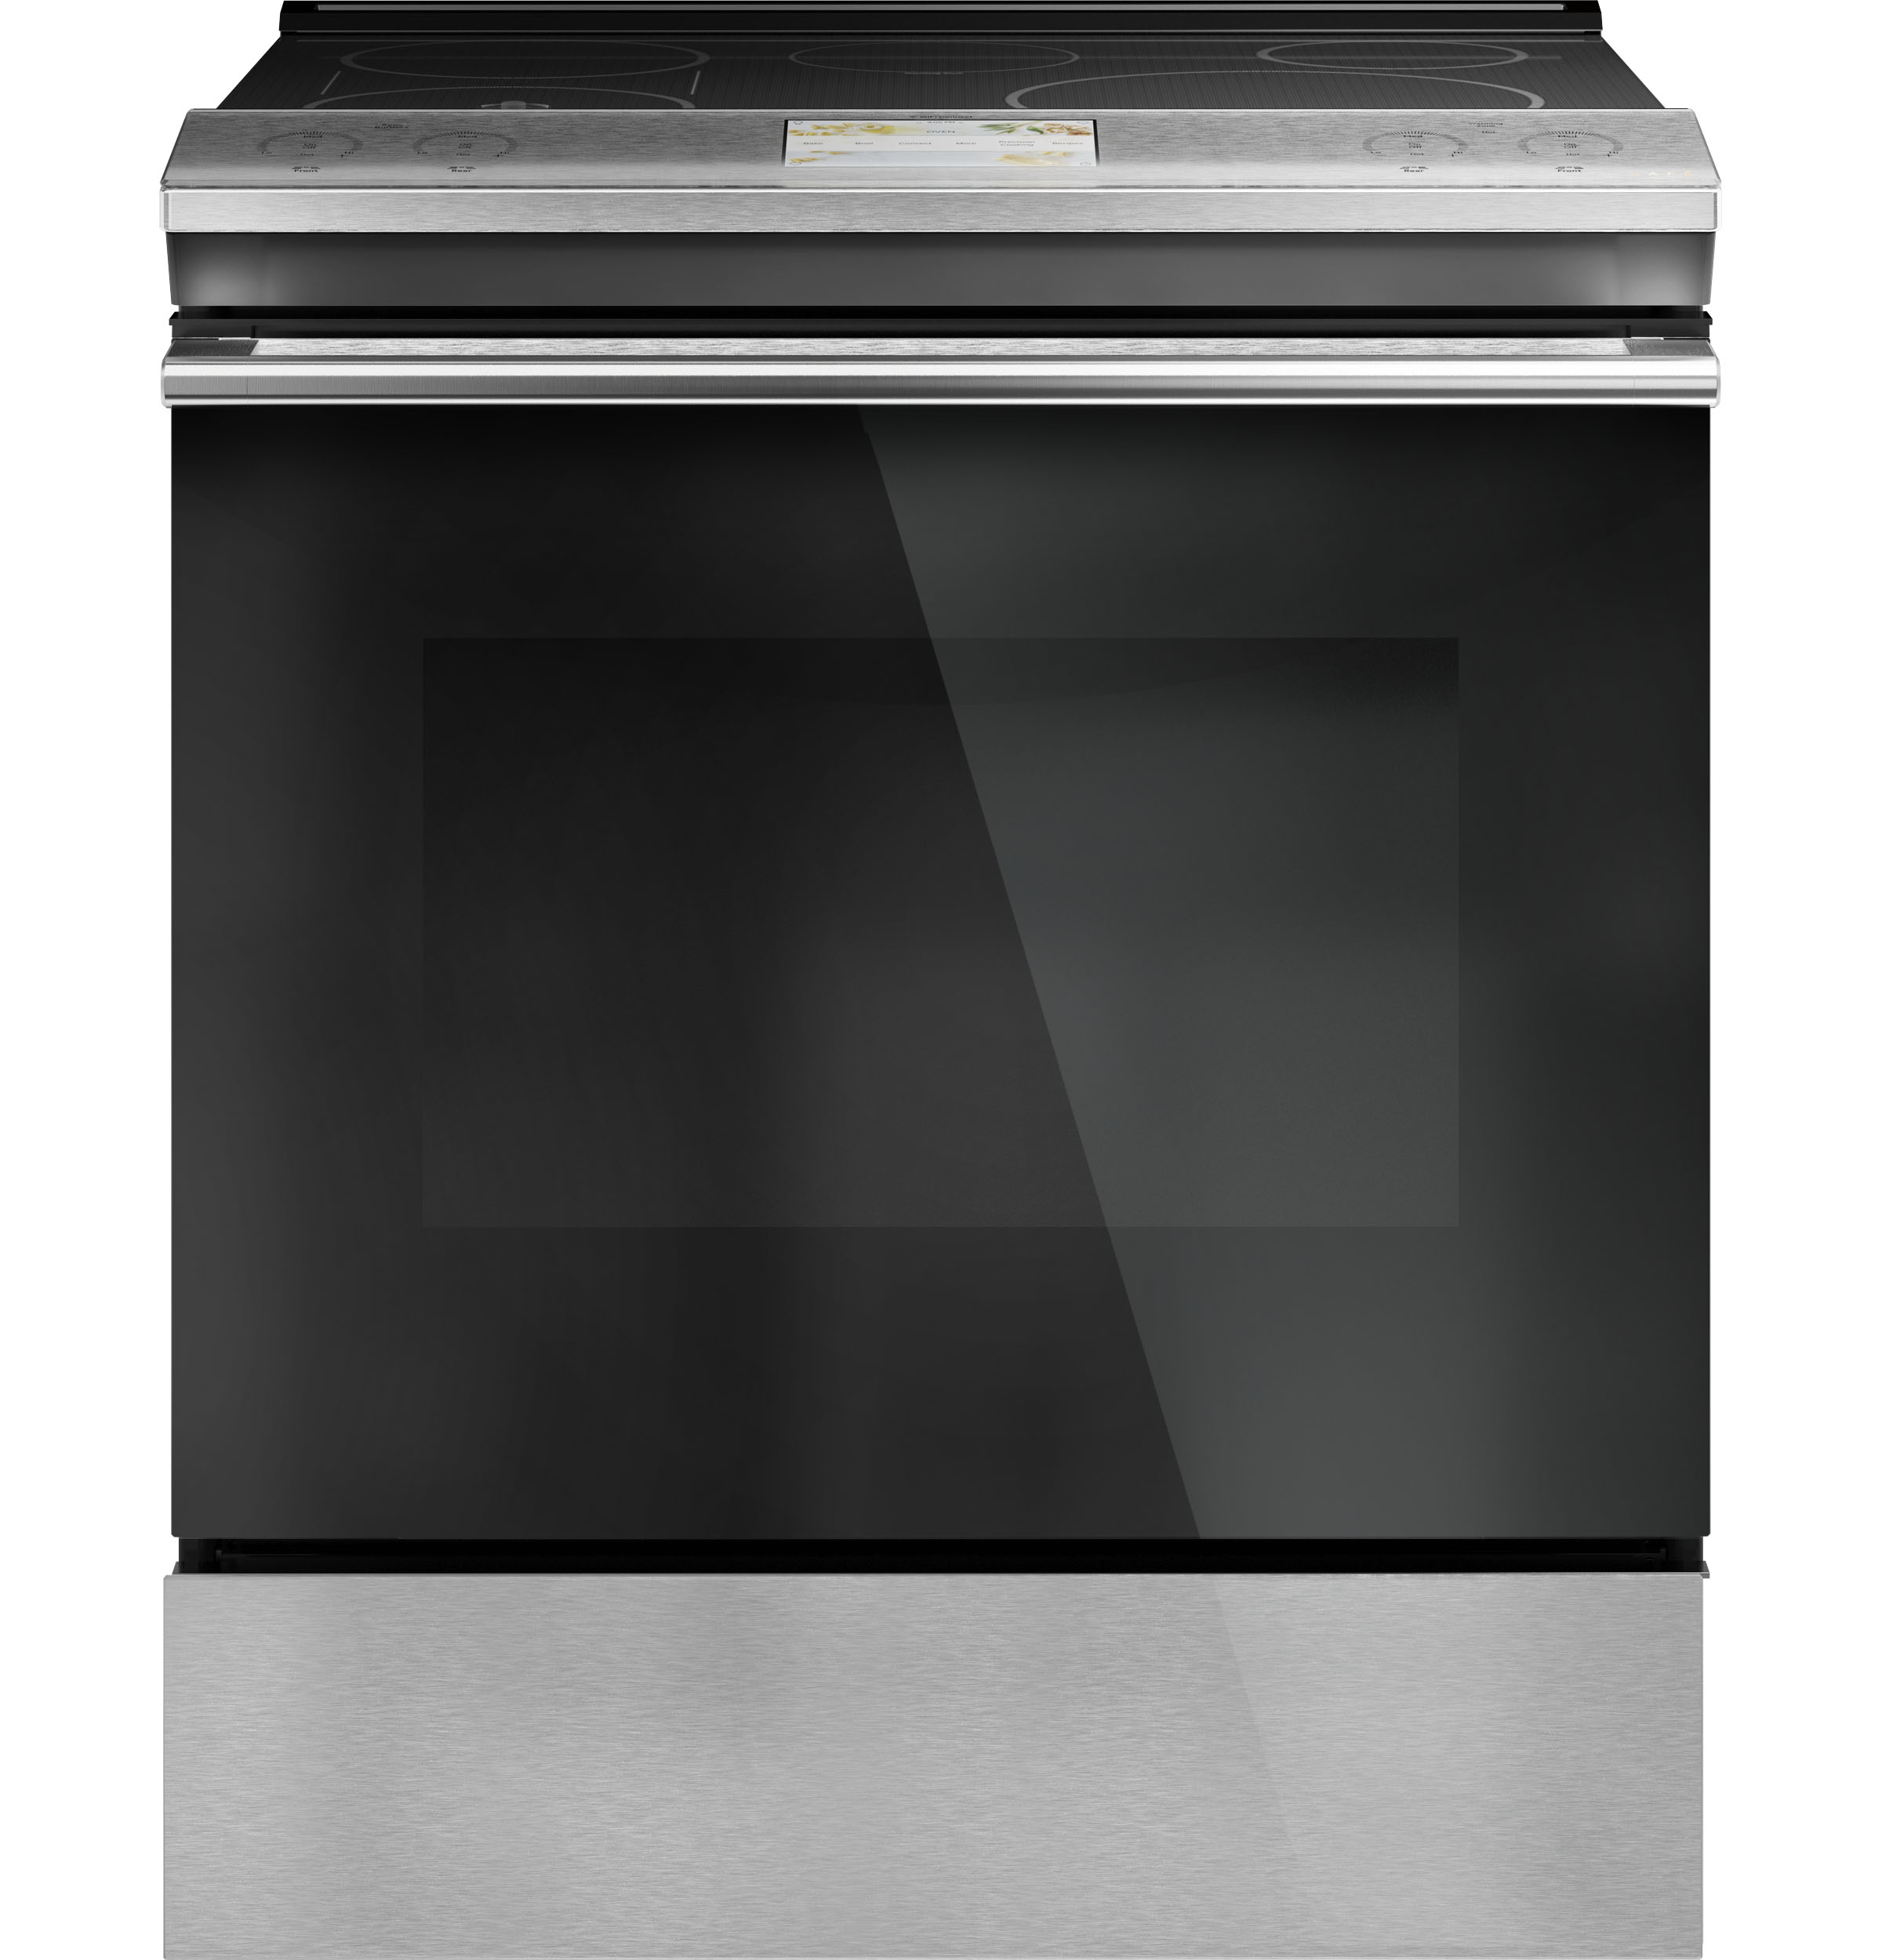 "Cafe Café™ 30"" Smart Slide-In, Front-Control, Induction and Convection Range with In-Oven Camera in Platinum Glass"